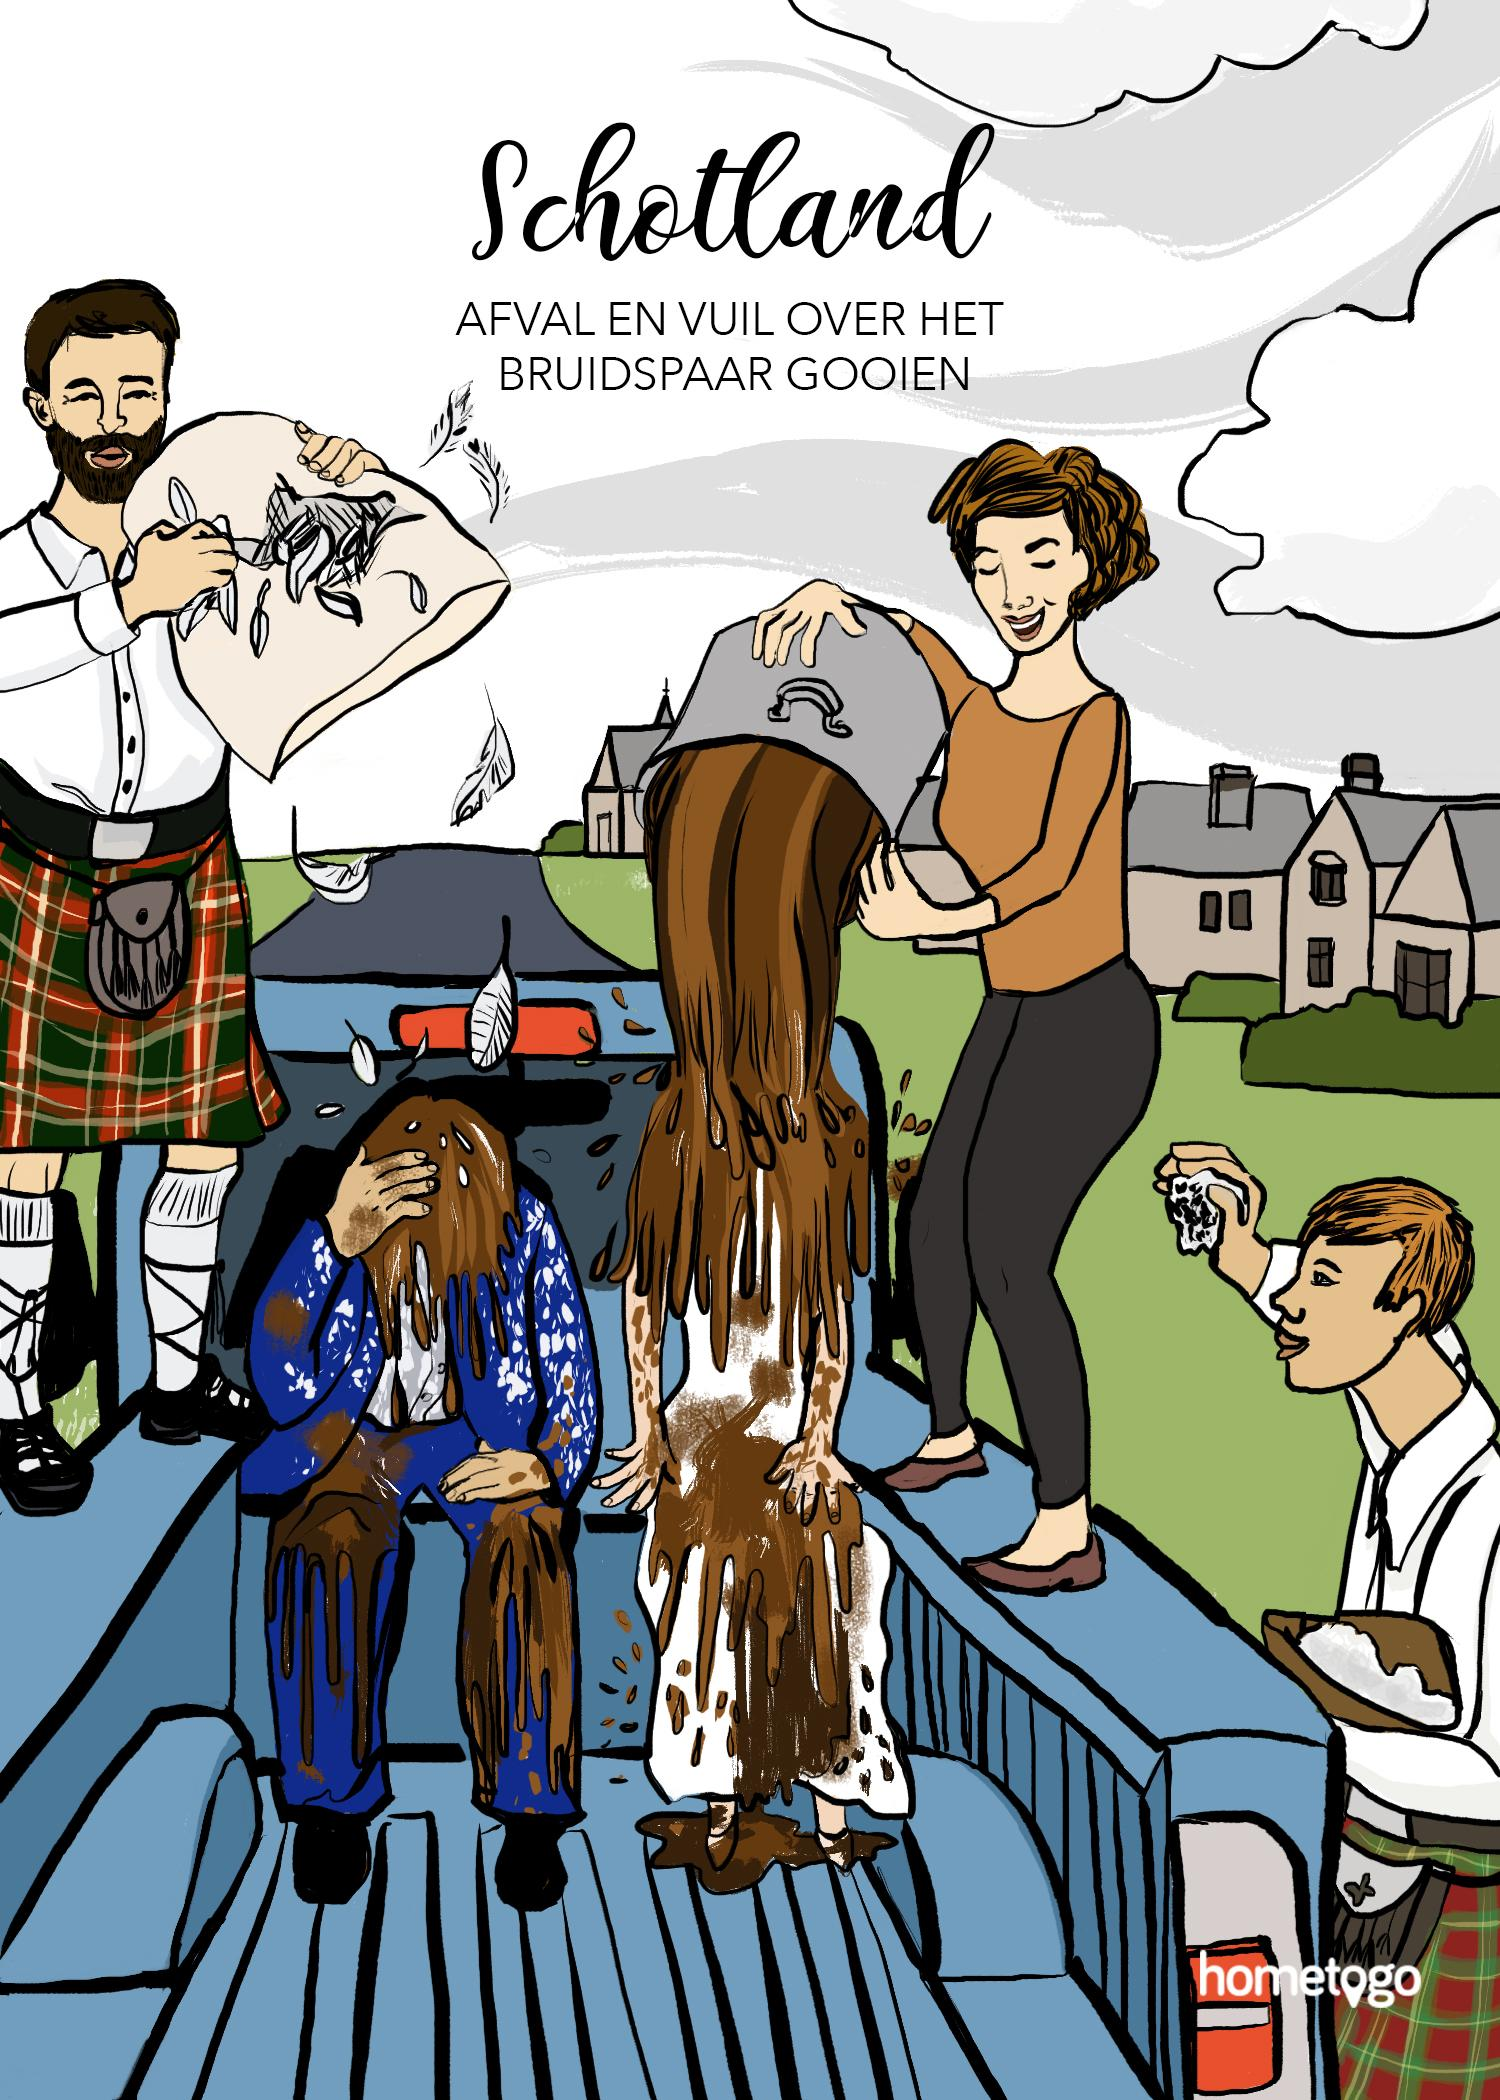 Illustration featuring the wedding custom from Scotland, where the groom and the bride get thrown dirt before the wedding